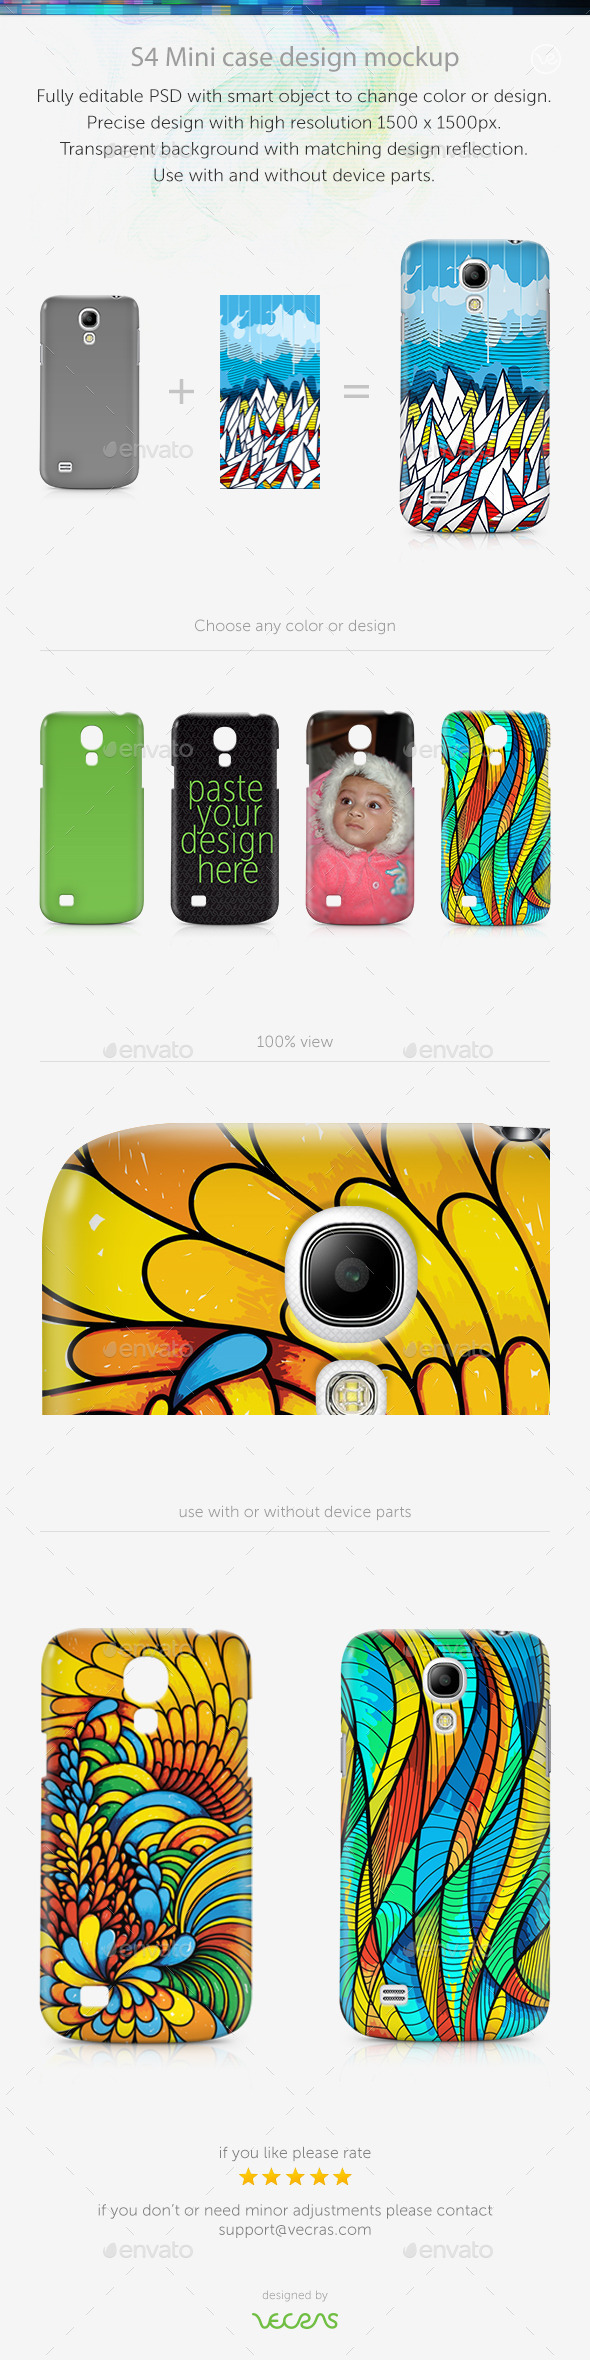 GraphicRiver S4 Mini Case Design Mockup 9700989